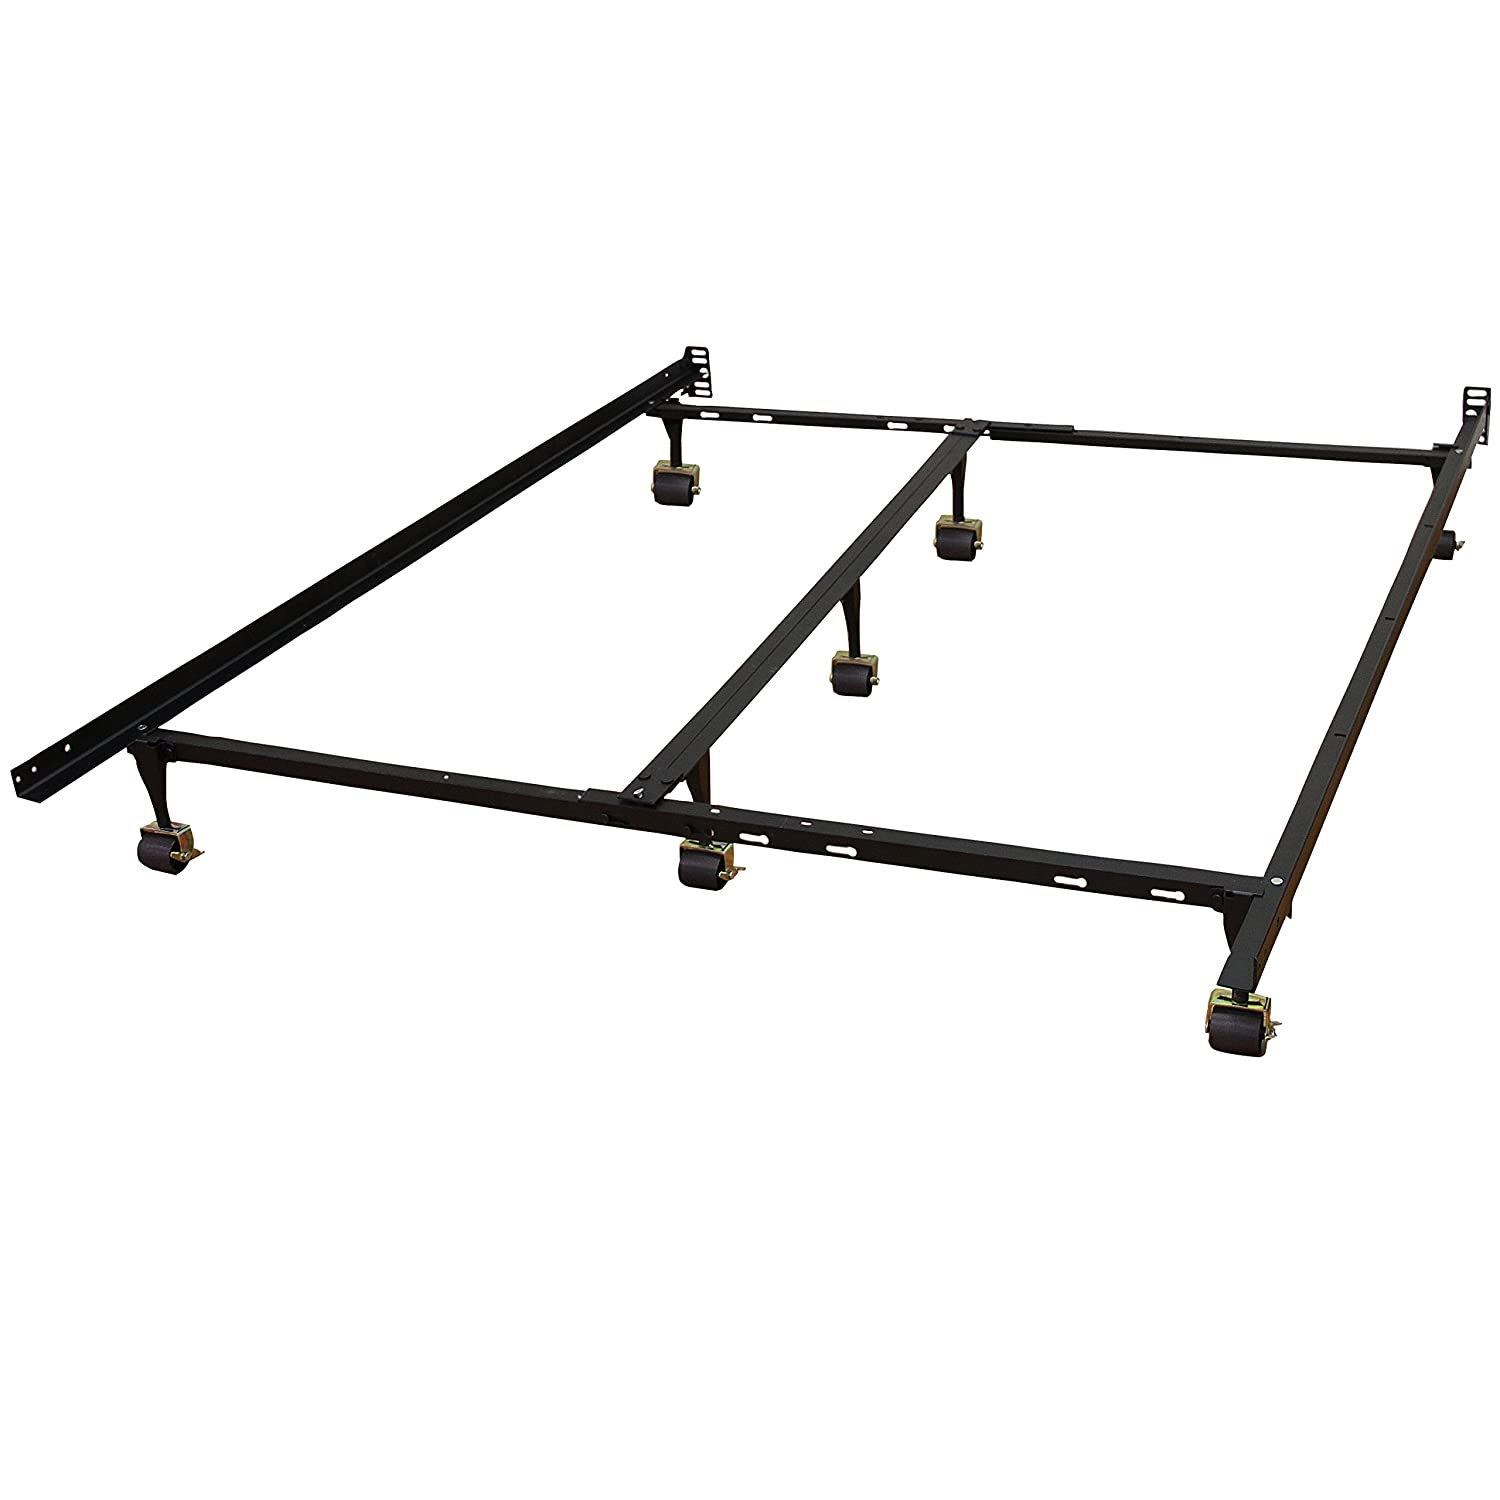 classic brands hercules universal heavy duty metal bed frame adjustable width fits twin twin xl full queen king california king - Bed Frames Queen